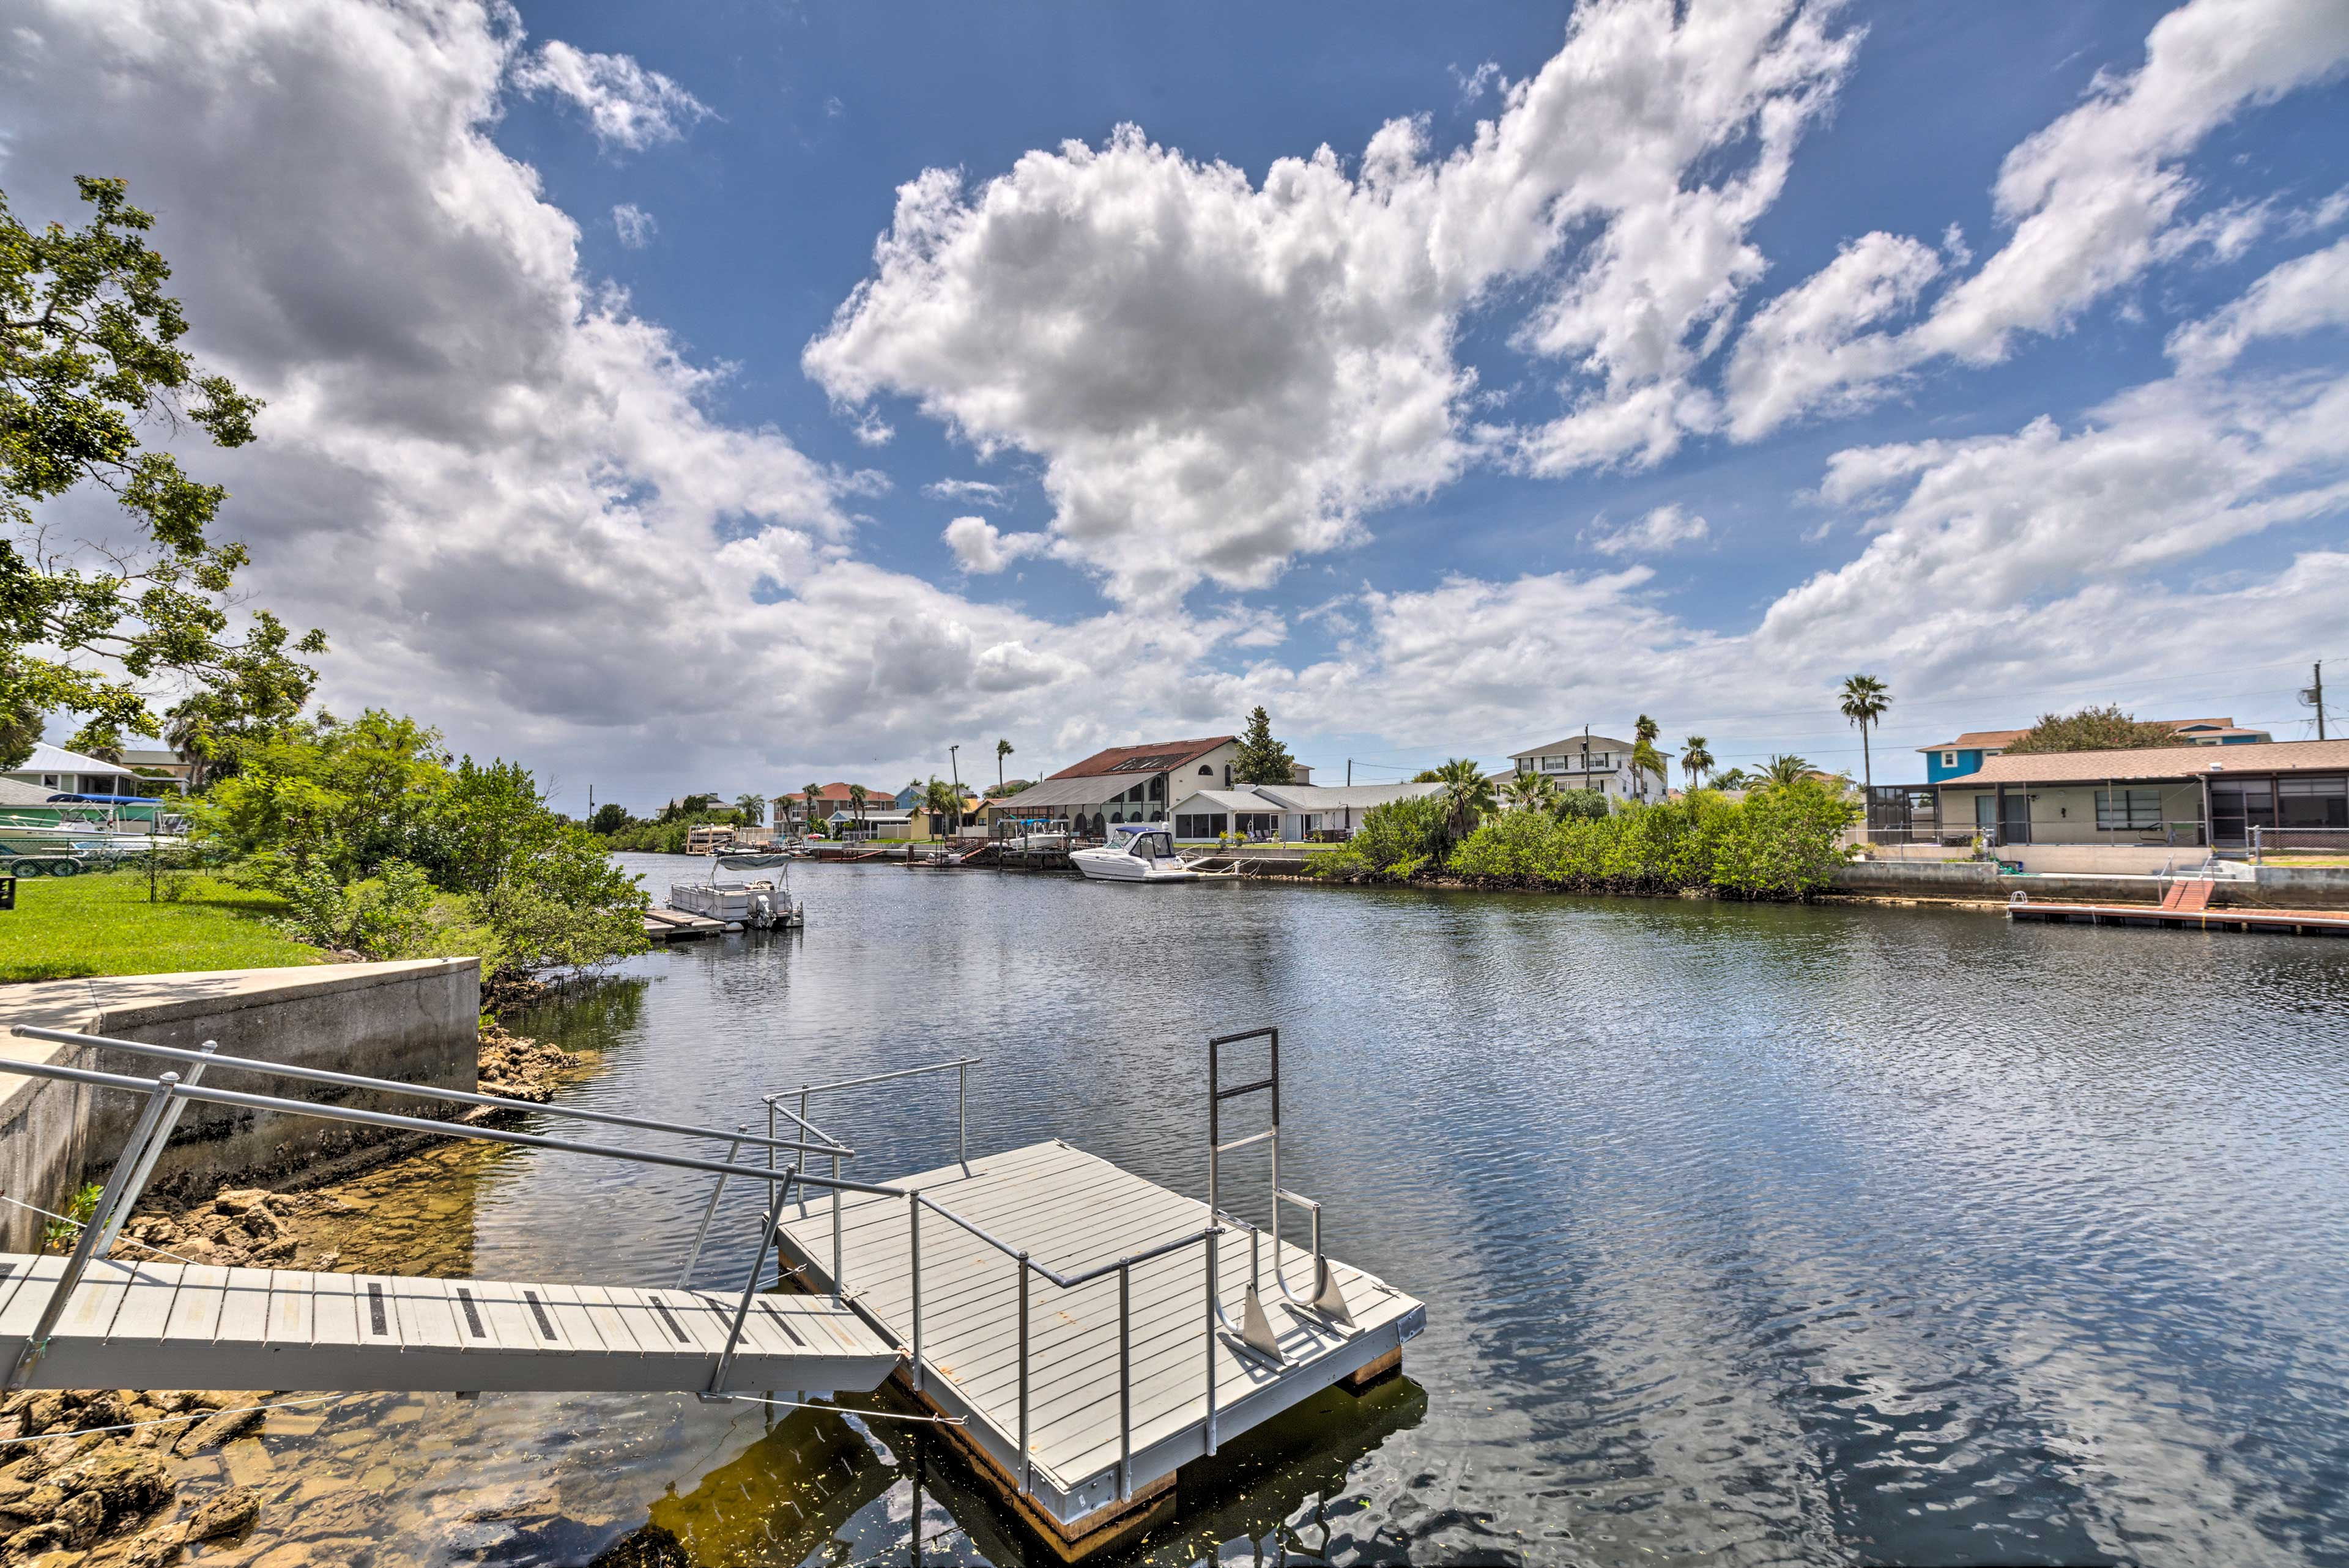 Tie your boat up to the floating dock or take off to the Gulf with ease.